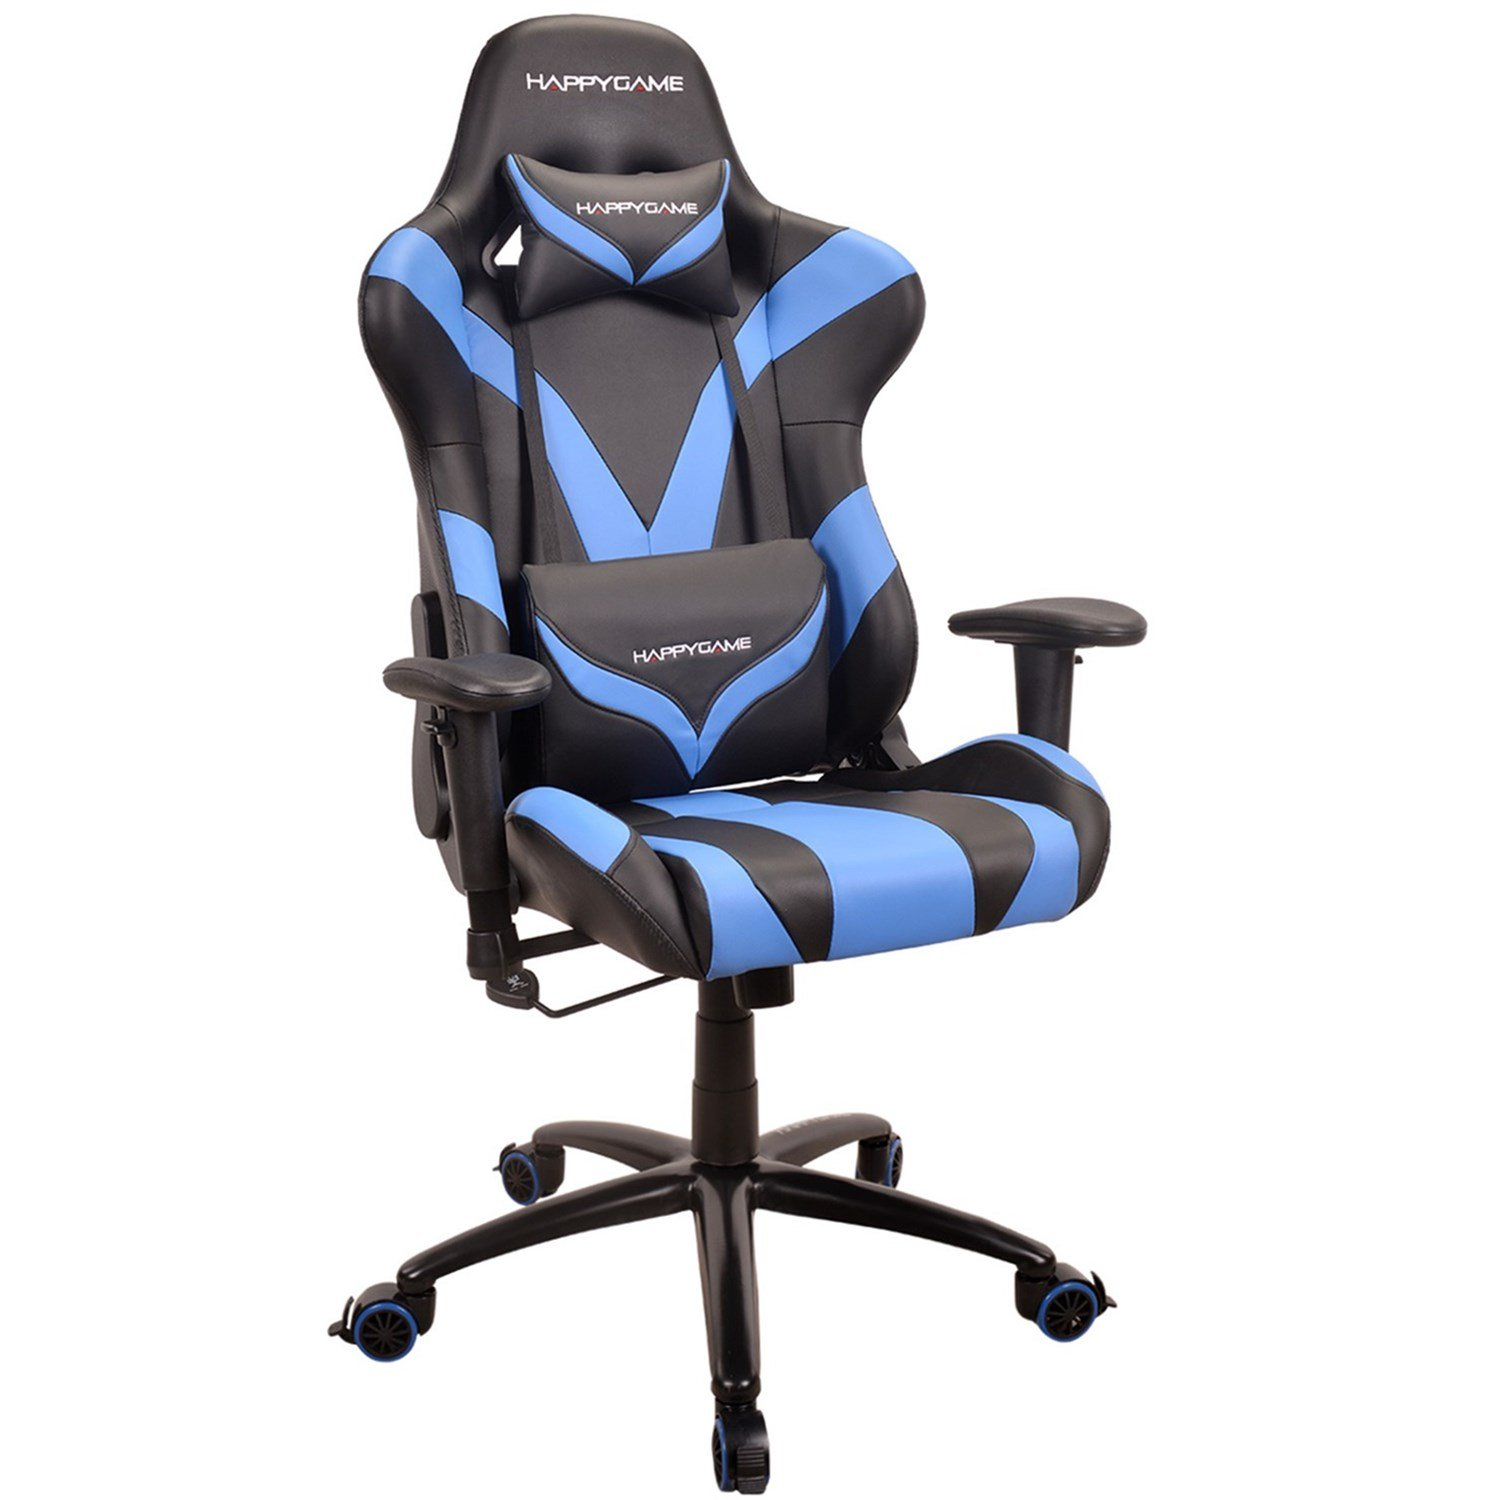 HAPPYGAME Racing Style Gaming Chair Large Ergonomic High-Back Breathable Fabric Office Executive Chair Computer Desk Chair with Headrest and Lumbar Support, Black